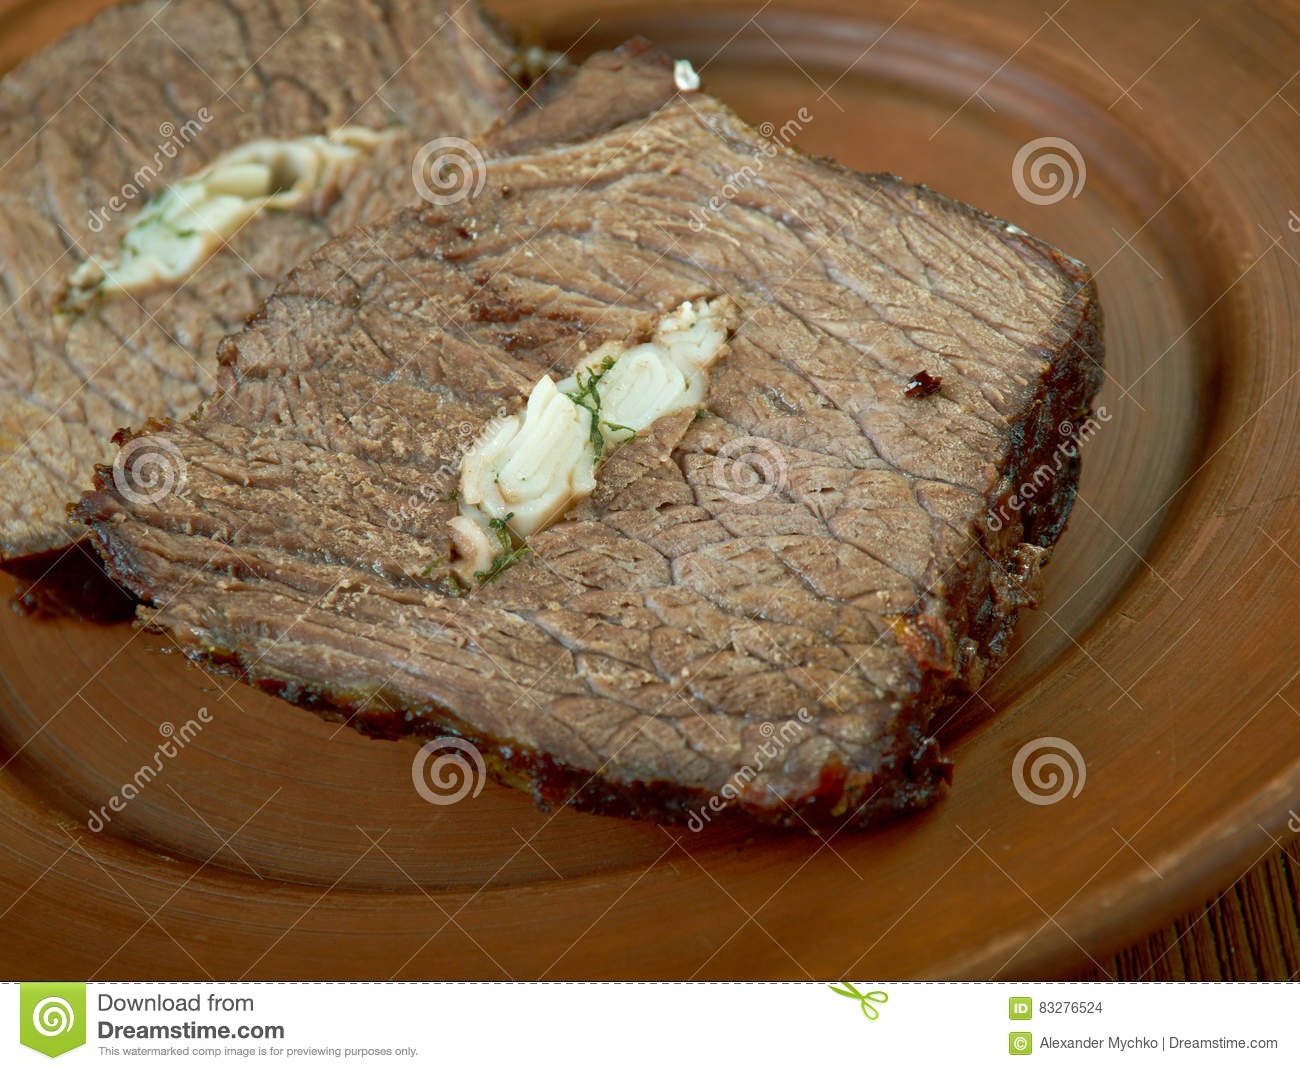 Carpet Bag Steak Australian or American derivation, popular in Australia and New Zealand, classic that once again proves that oysters and beef are a match ...